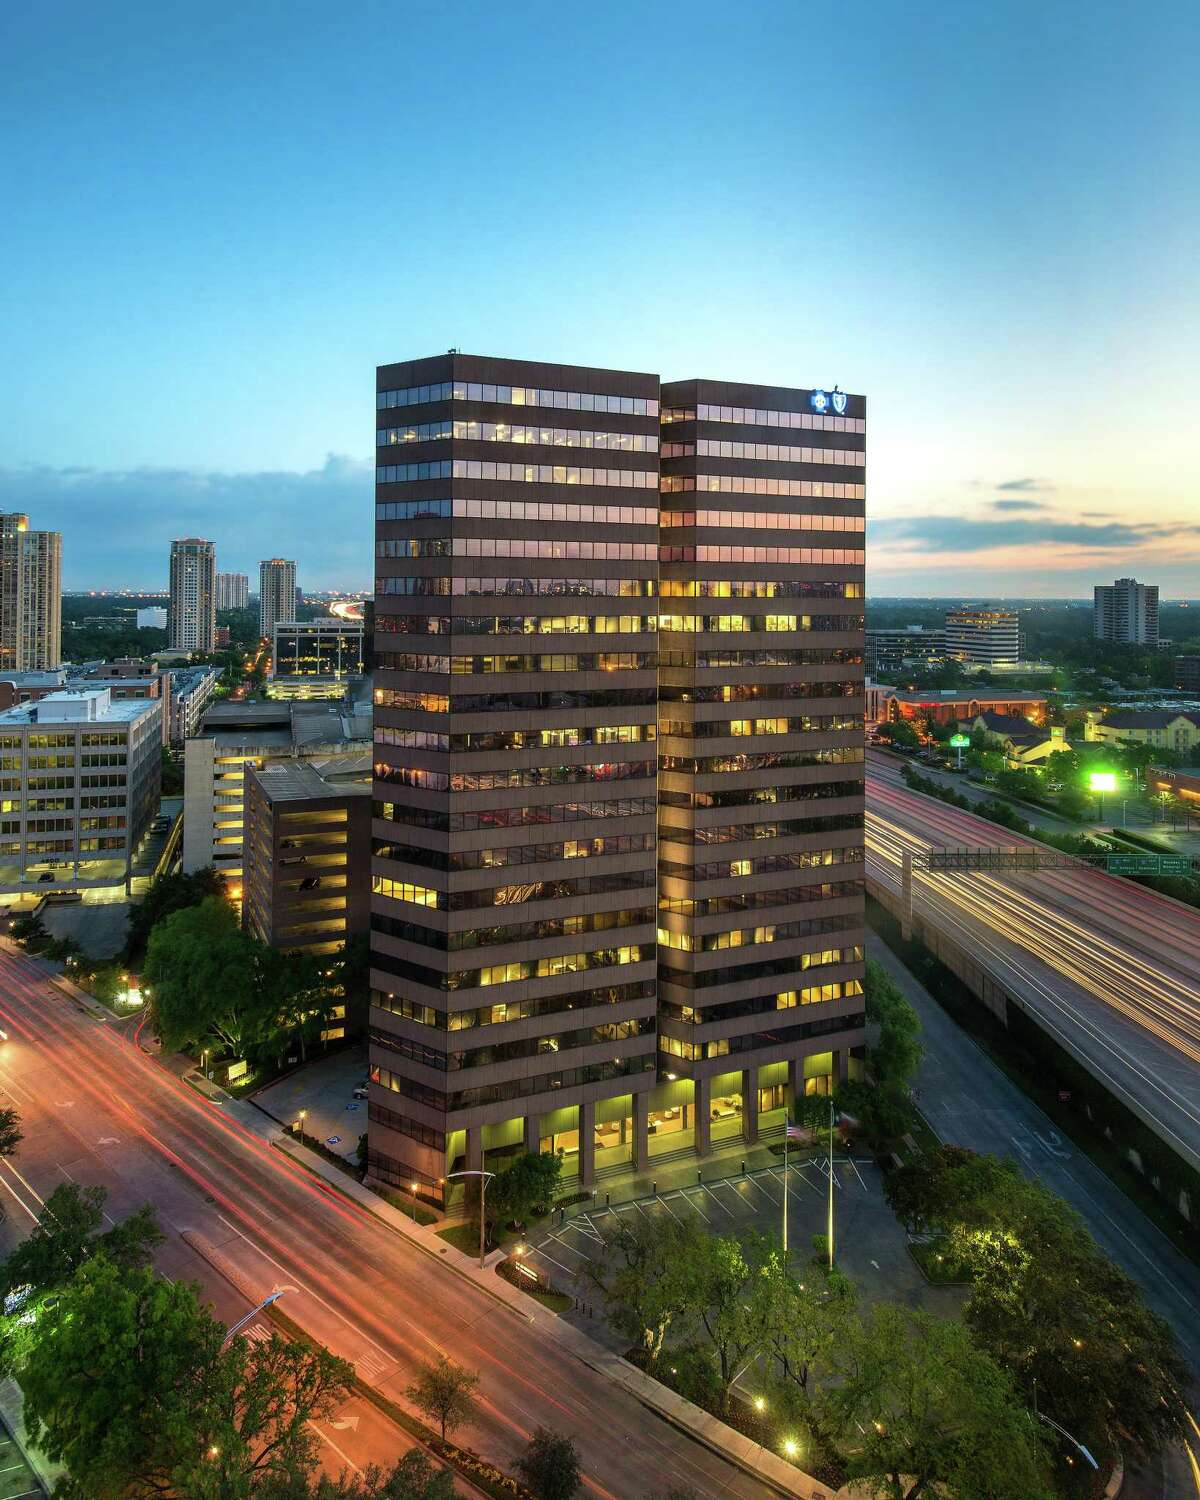 Thomas Title leased 3,860 square feet of office space at 1800 West Loop South.